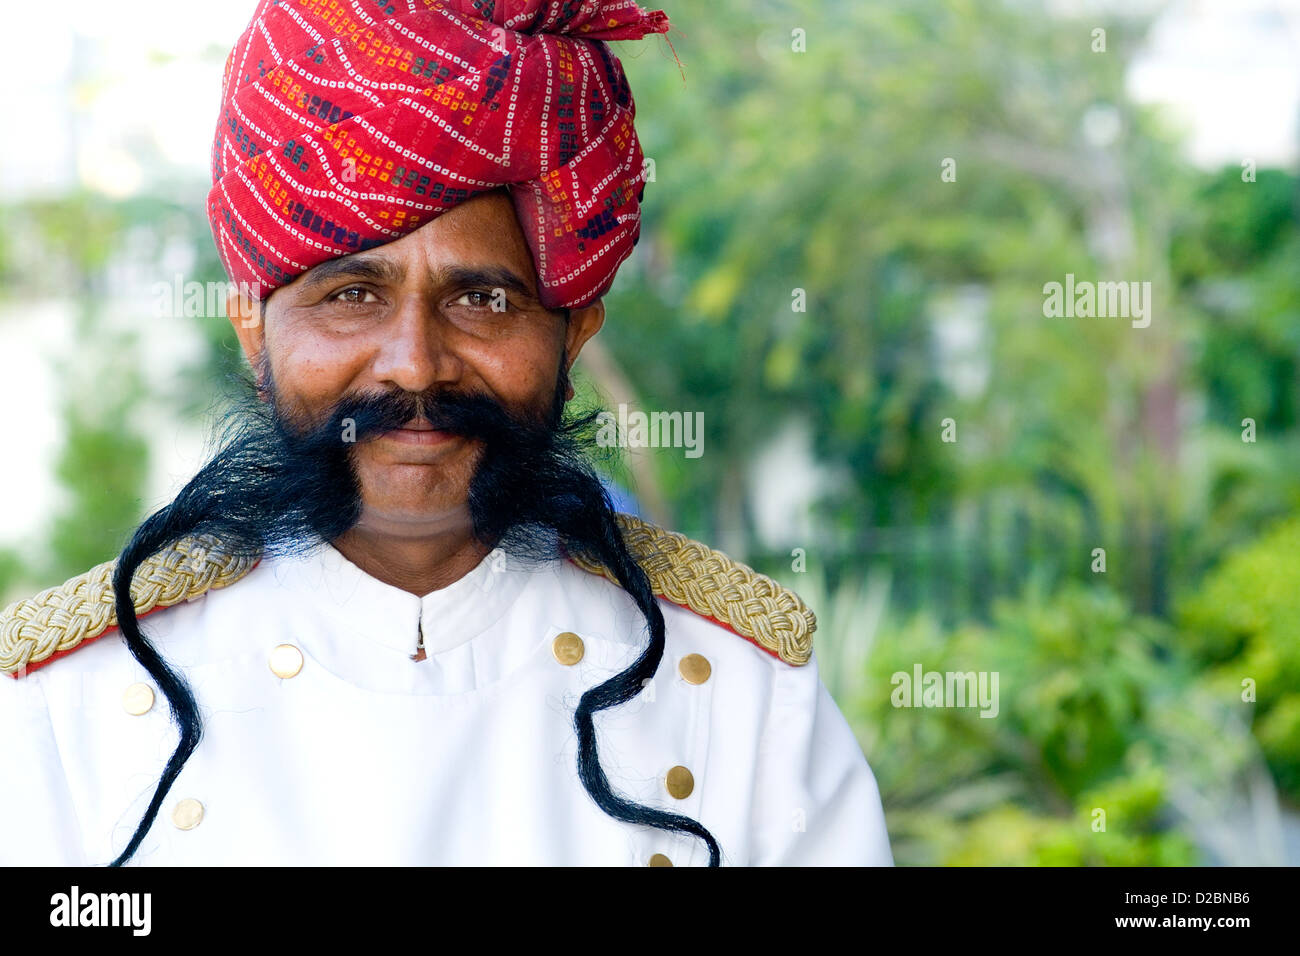 Man'S Moustache In Jaipur Rajasthan India - Stock Image